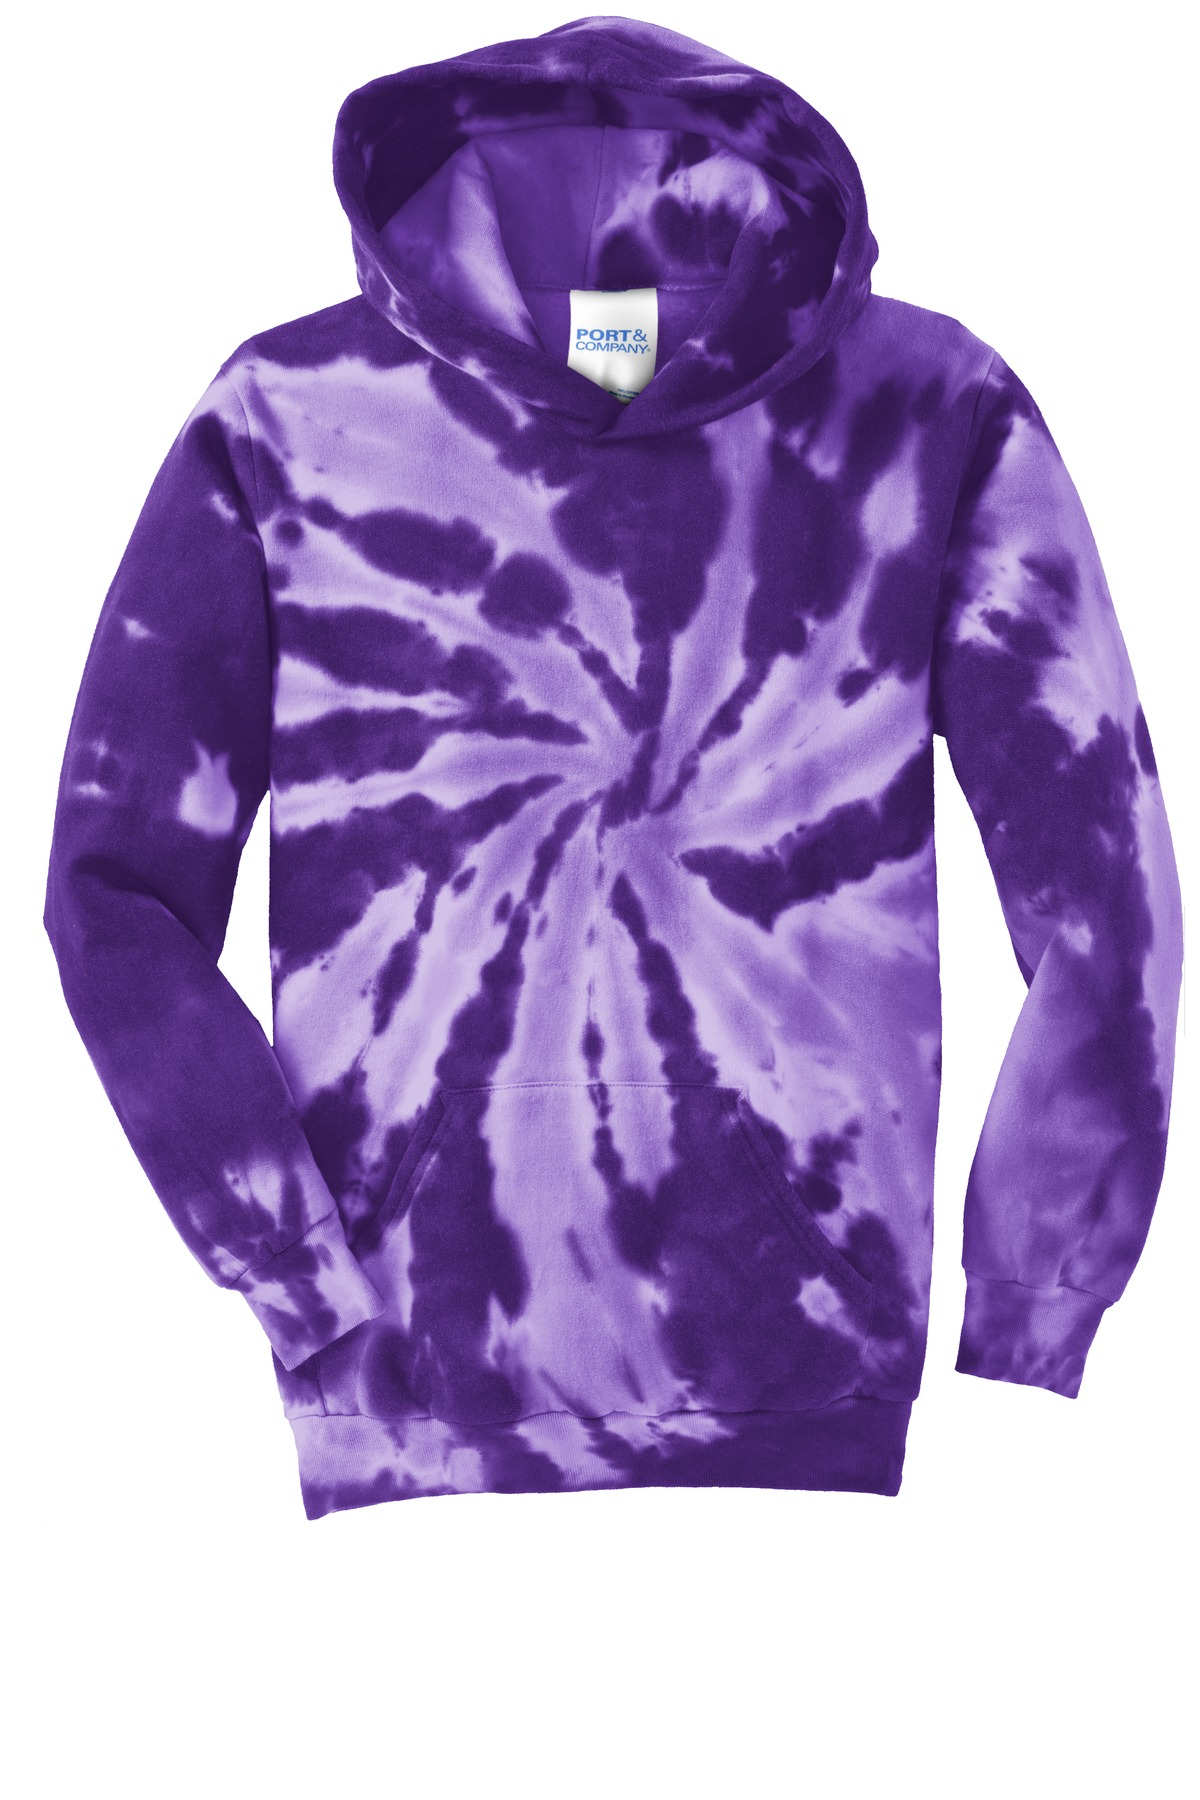 6b82fb19e Youth Tie Dye Hooded Sweatshirts – EDGE Engineering and Consulting ...